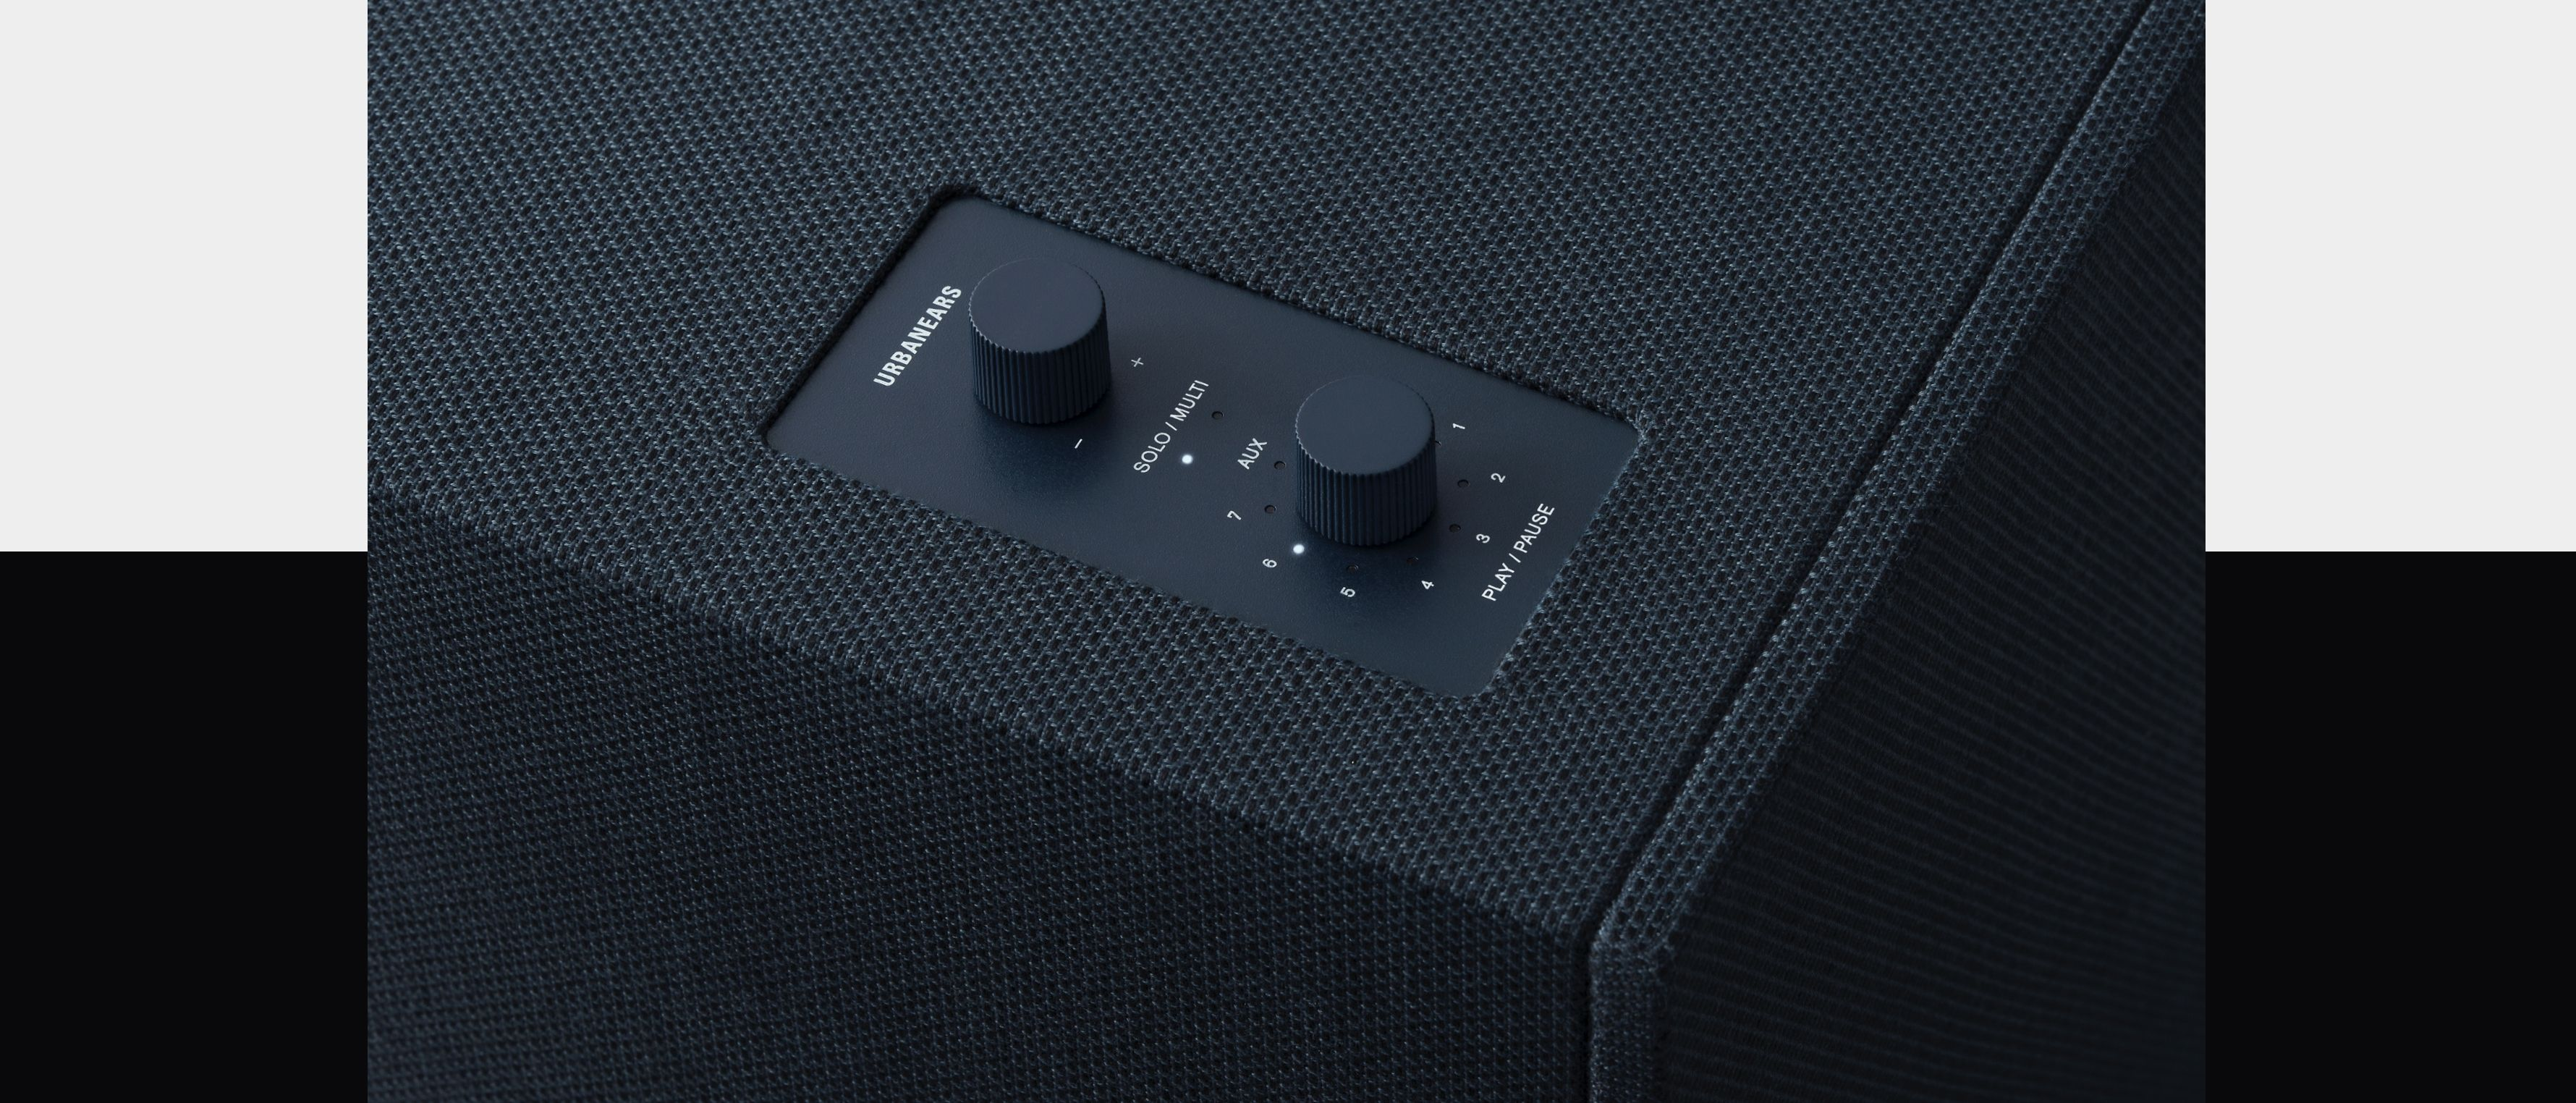 Bluetooth and Wireless Speakers that connect to anything | Urbanears | Urbanears Headphones